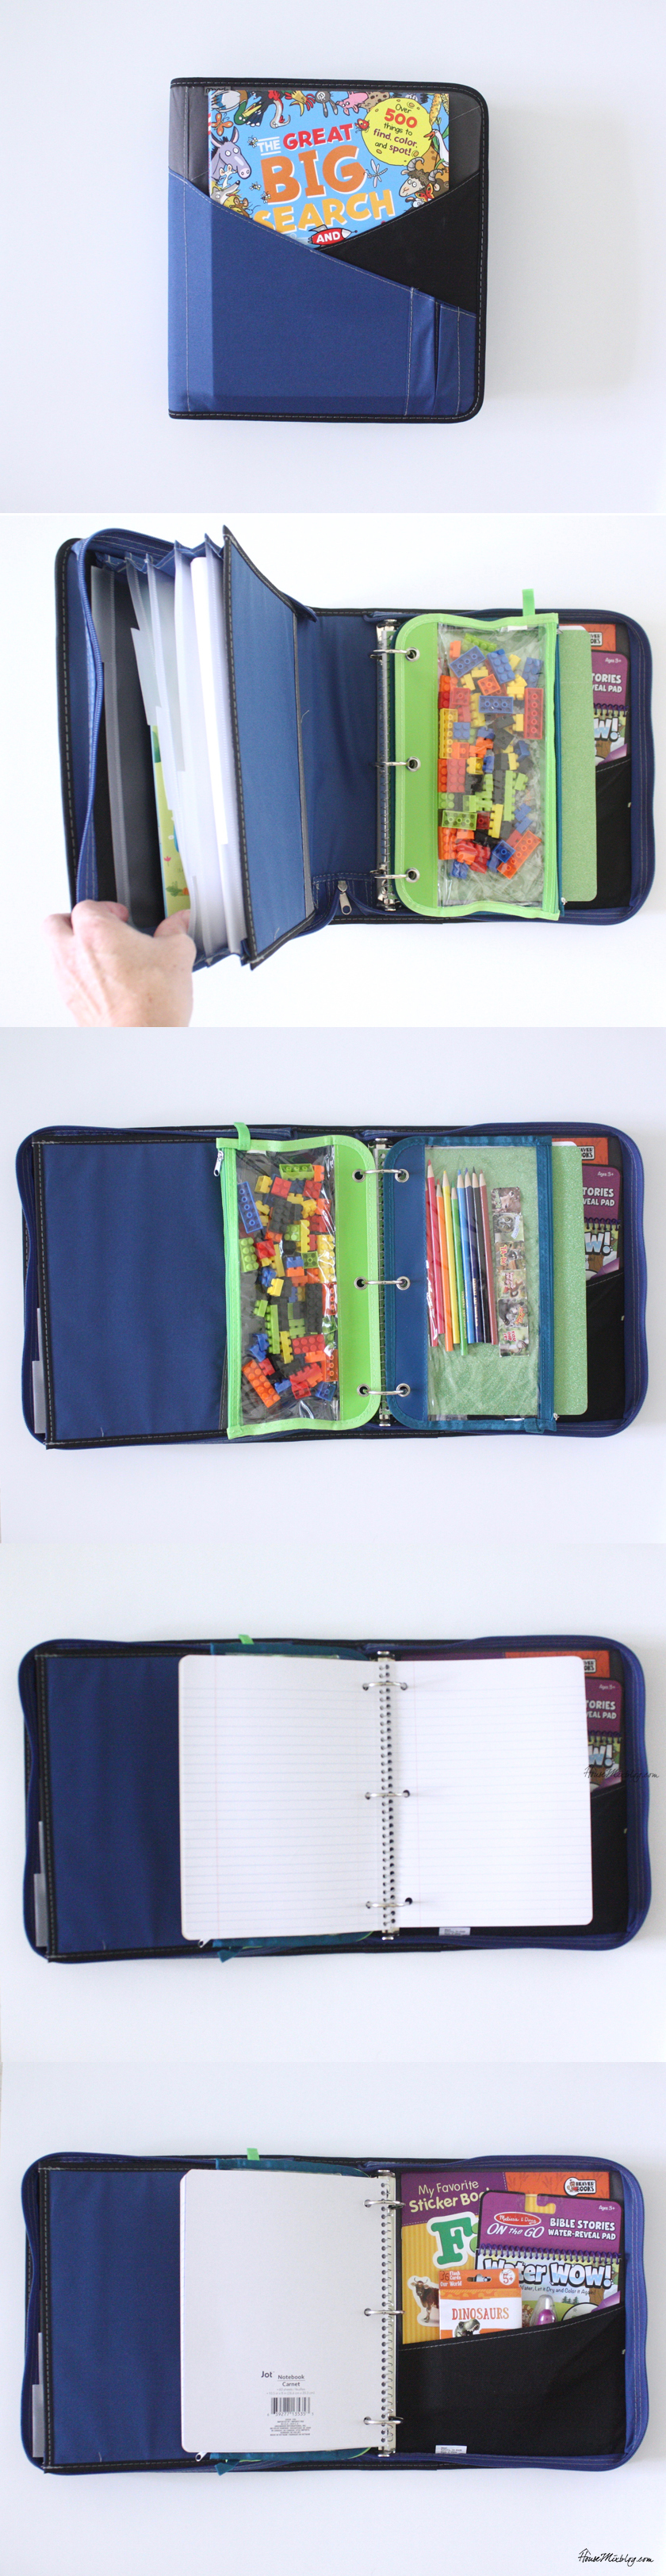 Binder of activities for kids on the plane with foldable backpacks